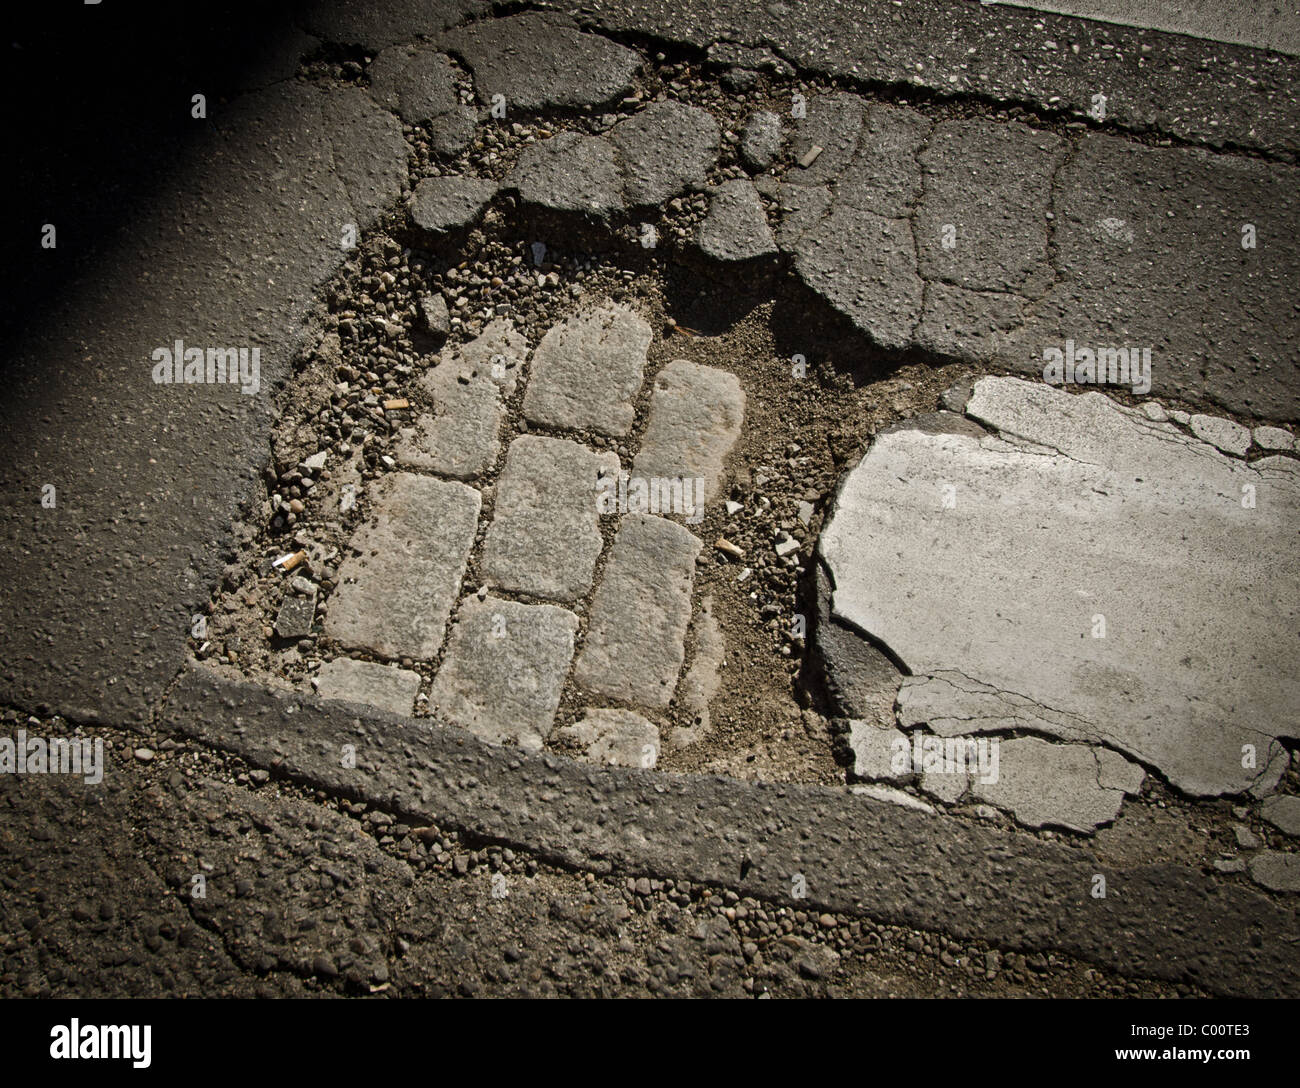 Damaged road surface showing different layers of surfaces Stock Photo